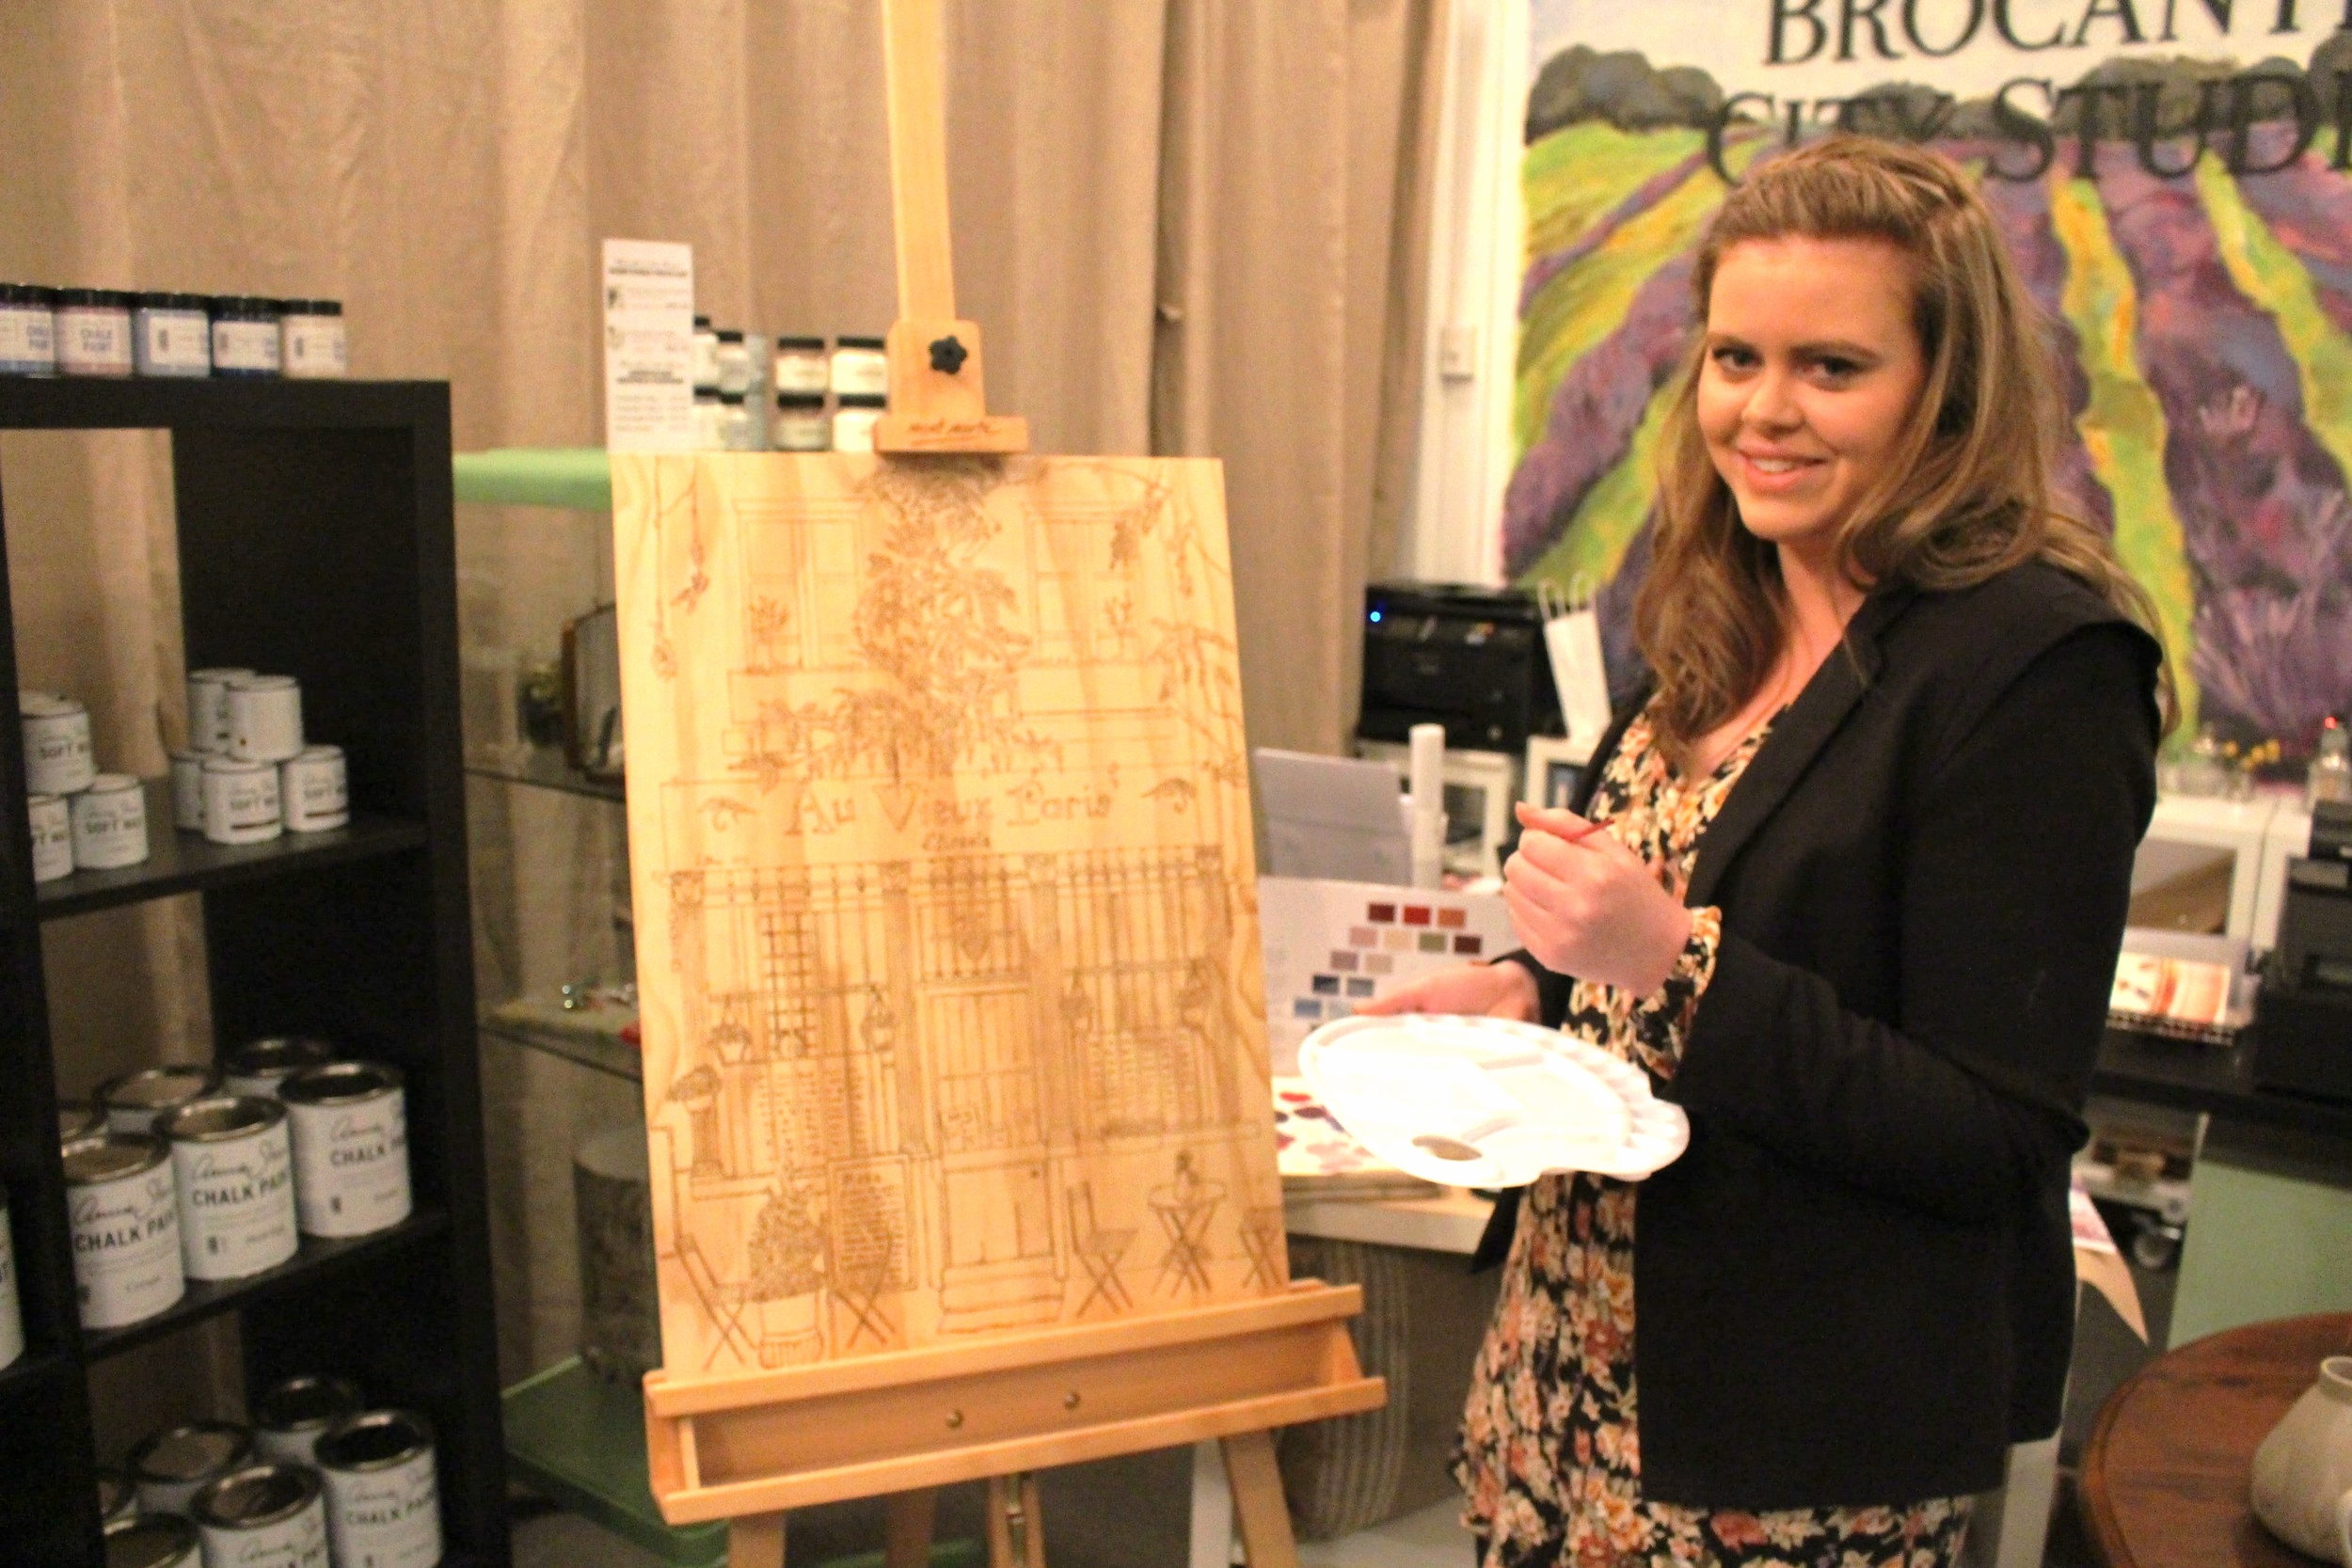 Local Adelaide Artist, Lucy Brewin, doing a live painting demonstration at the Brocante In The Barossa Launch